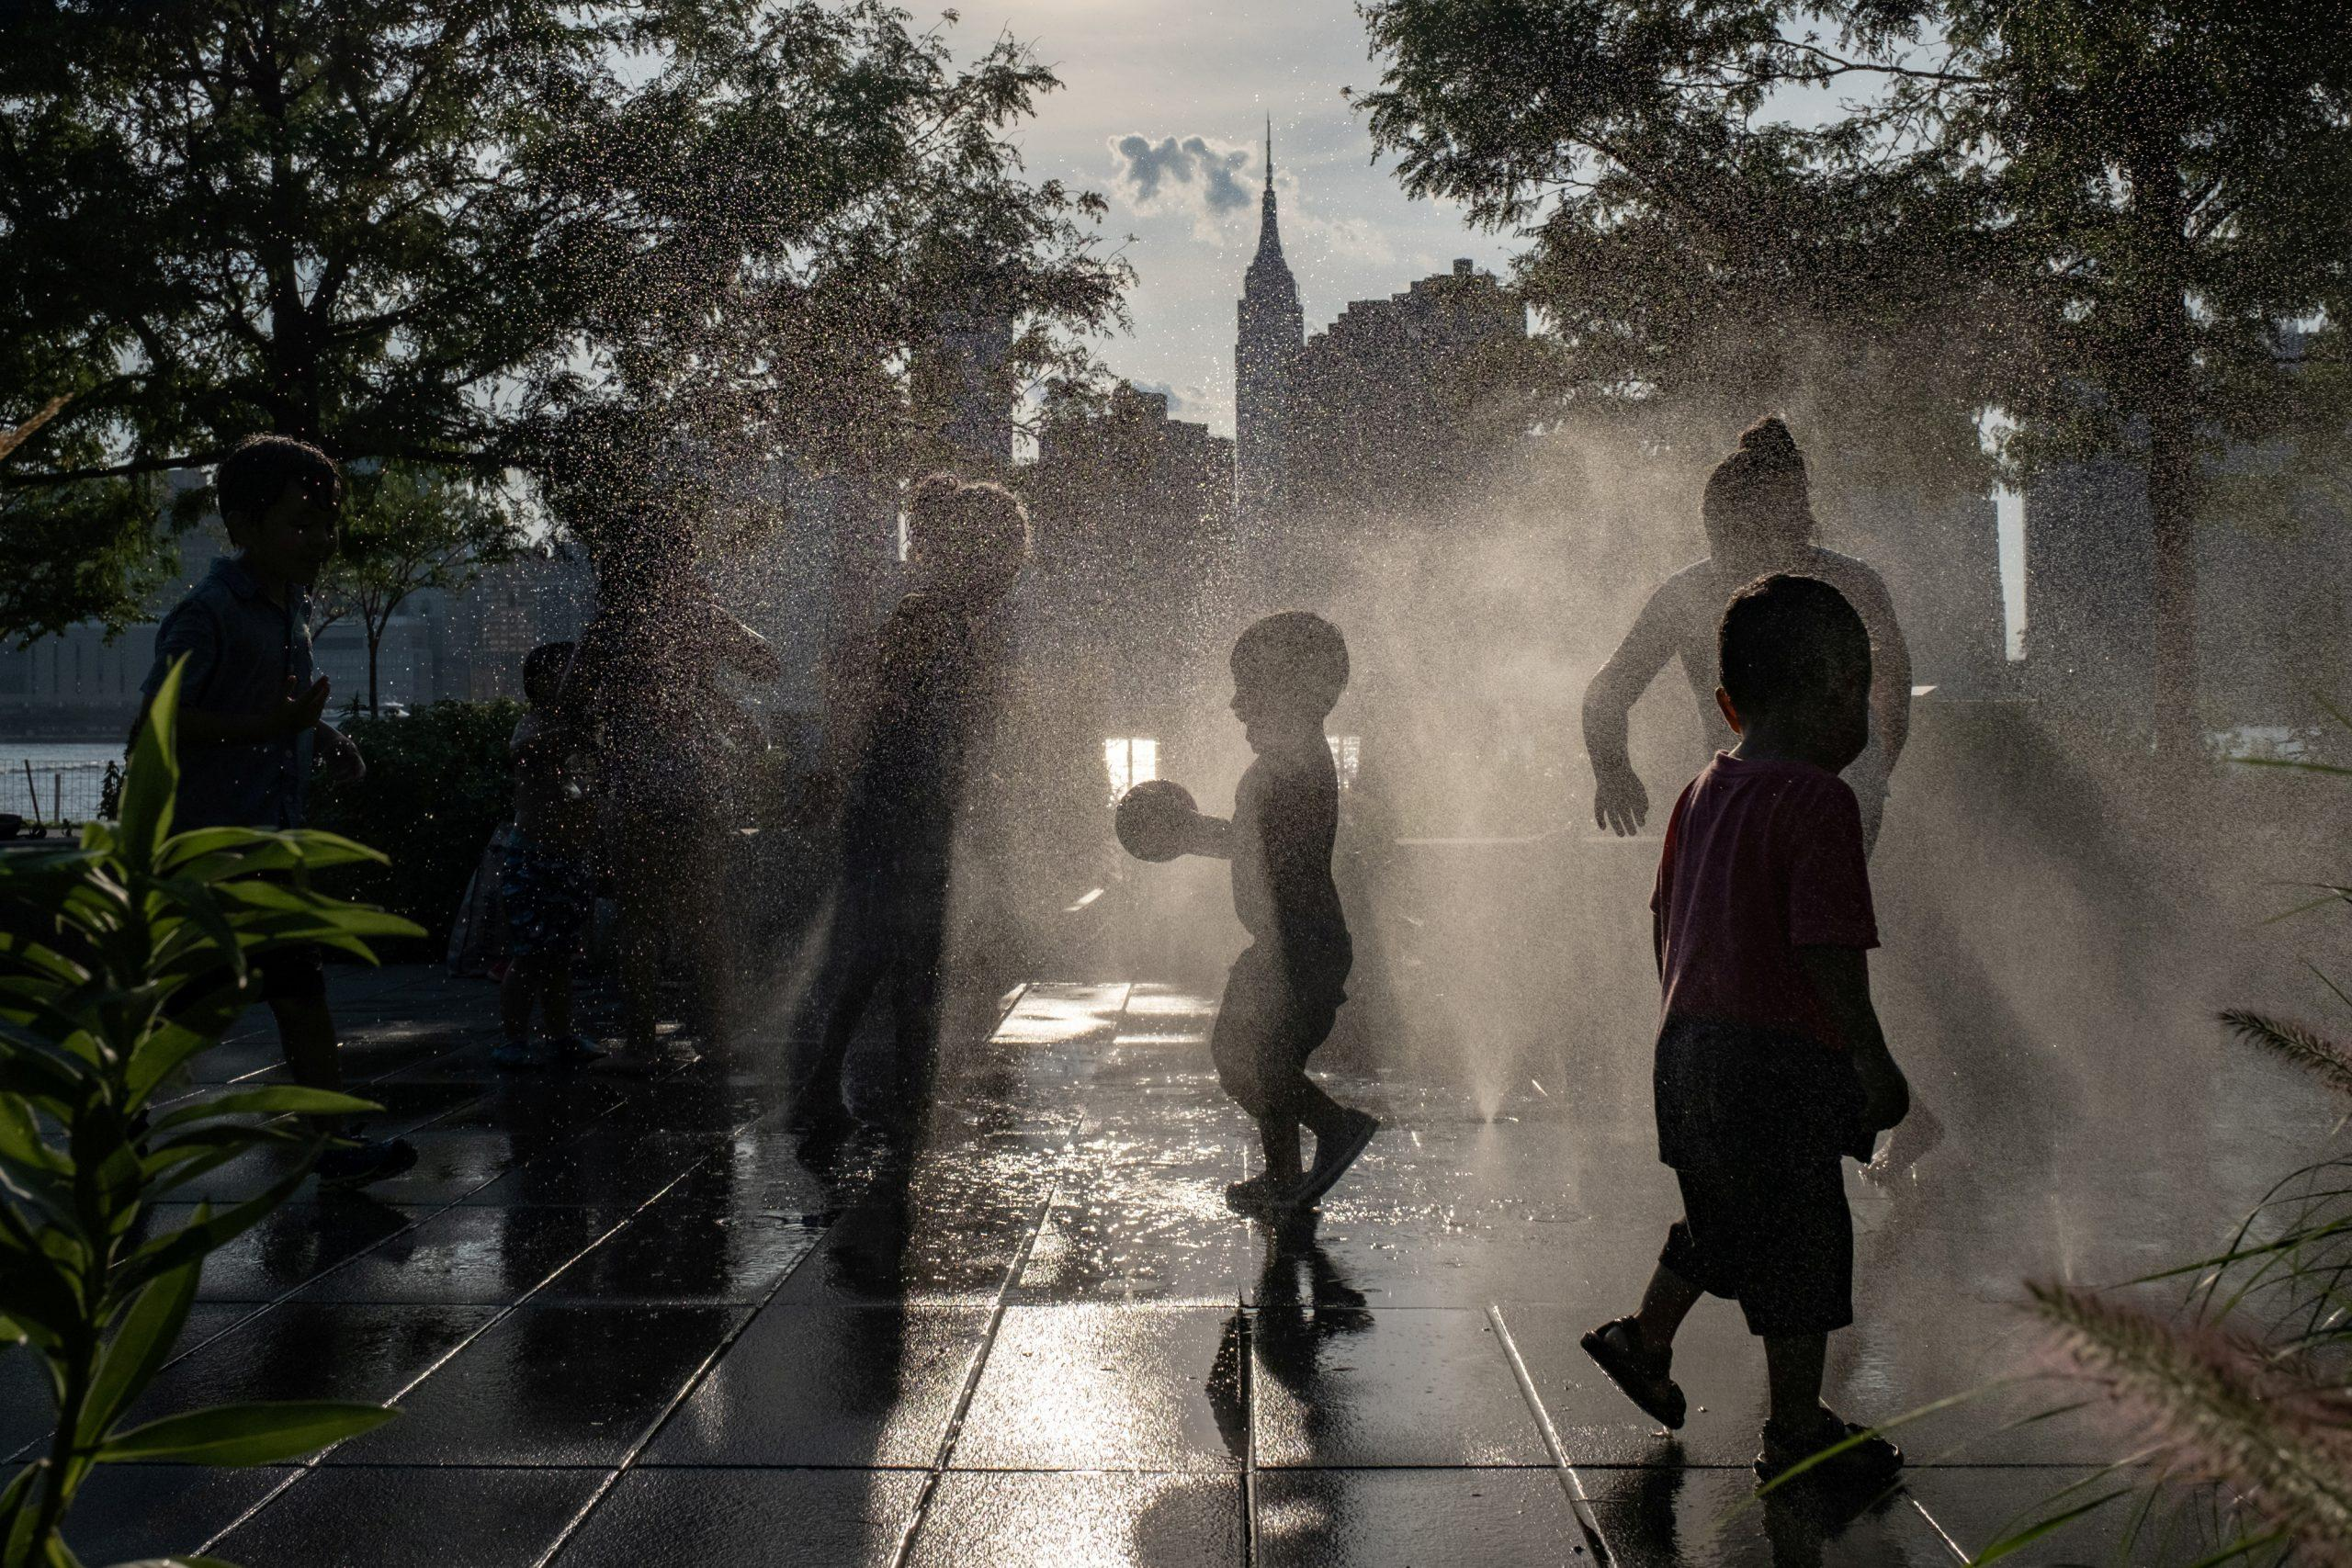 Eat or stay cool? Cities test ways to protect the poor from rising heat - GLOBAL HEROES MAGAZINE